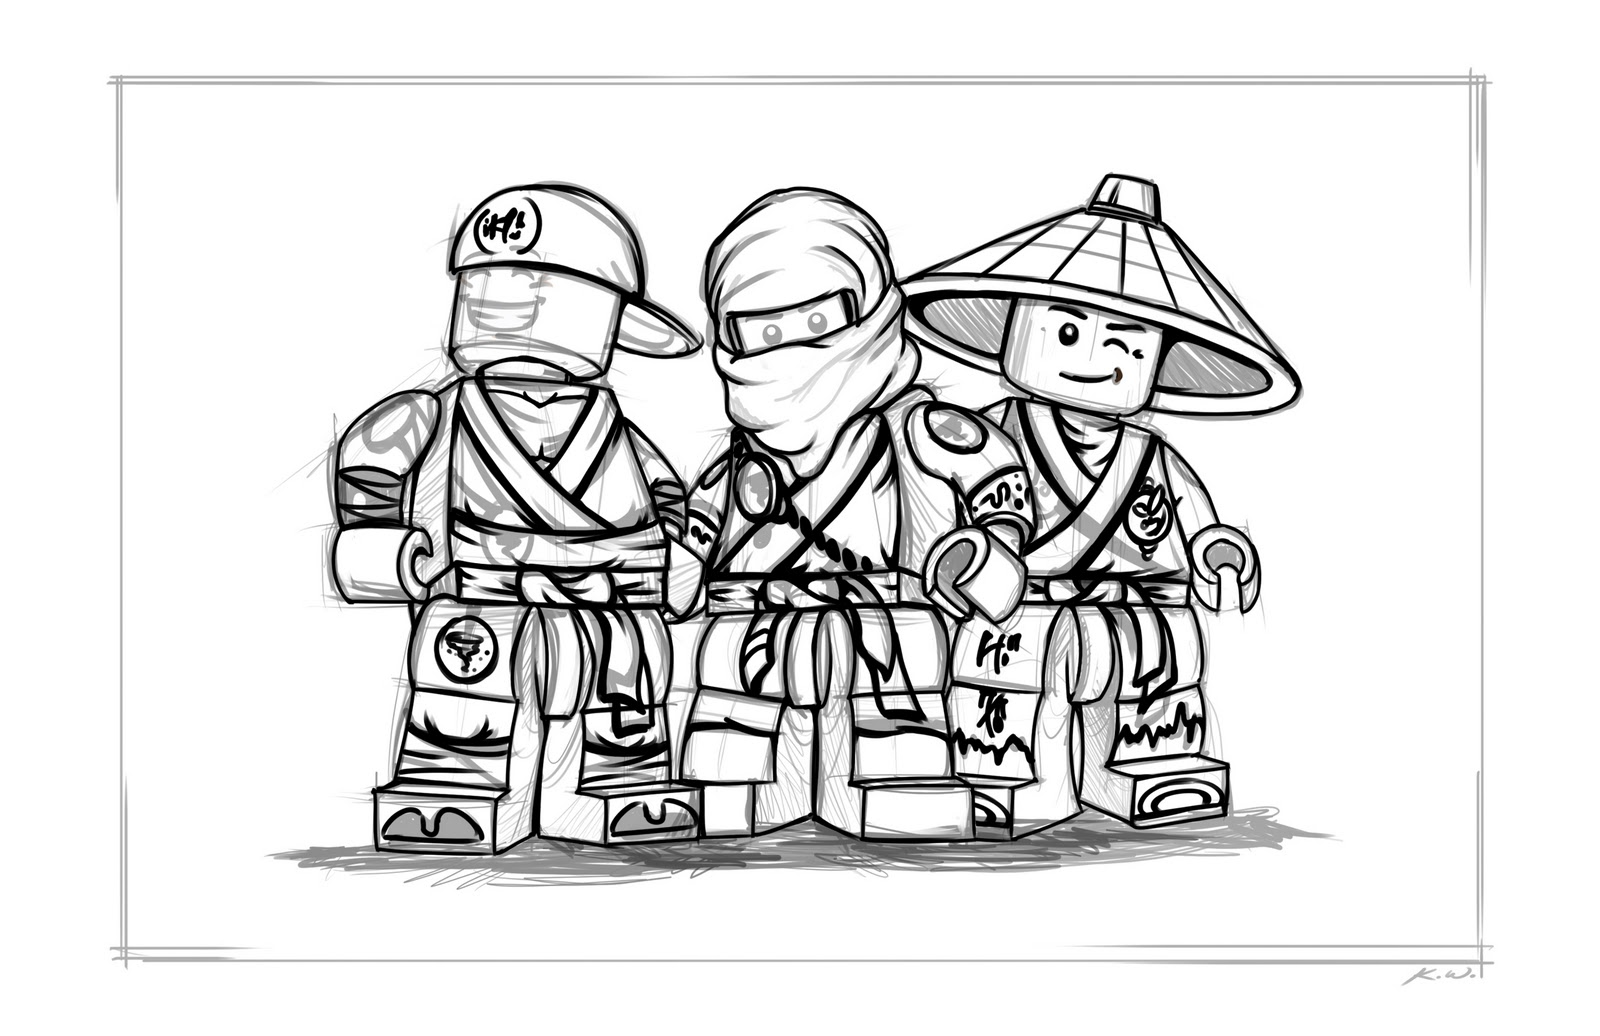 Free coloring pages of all lego ninjago